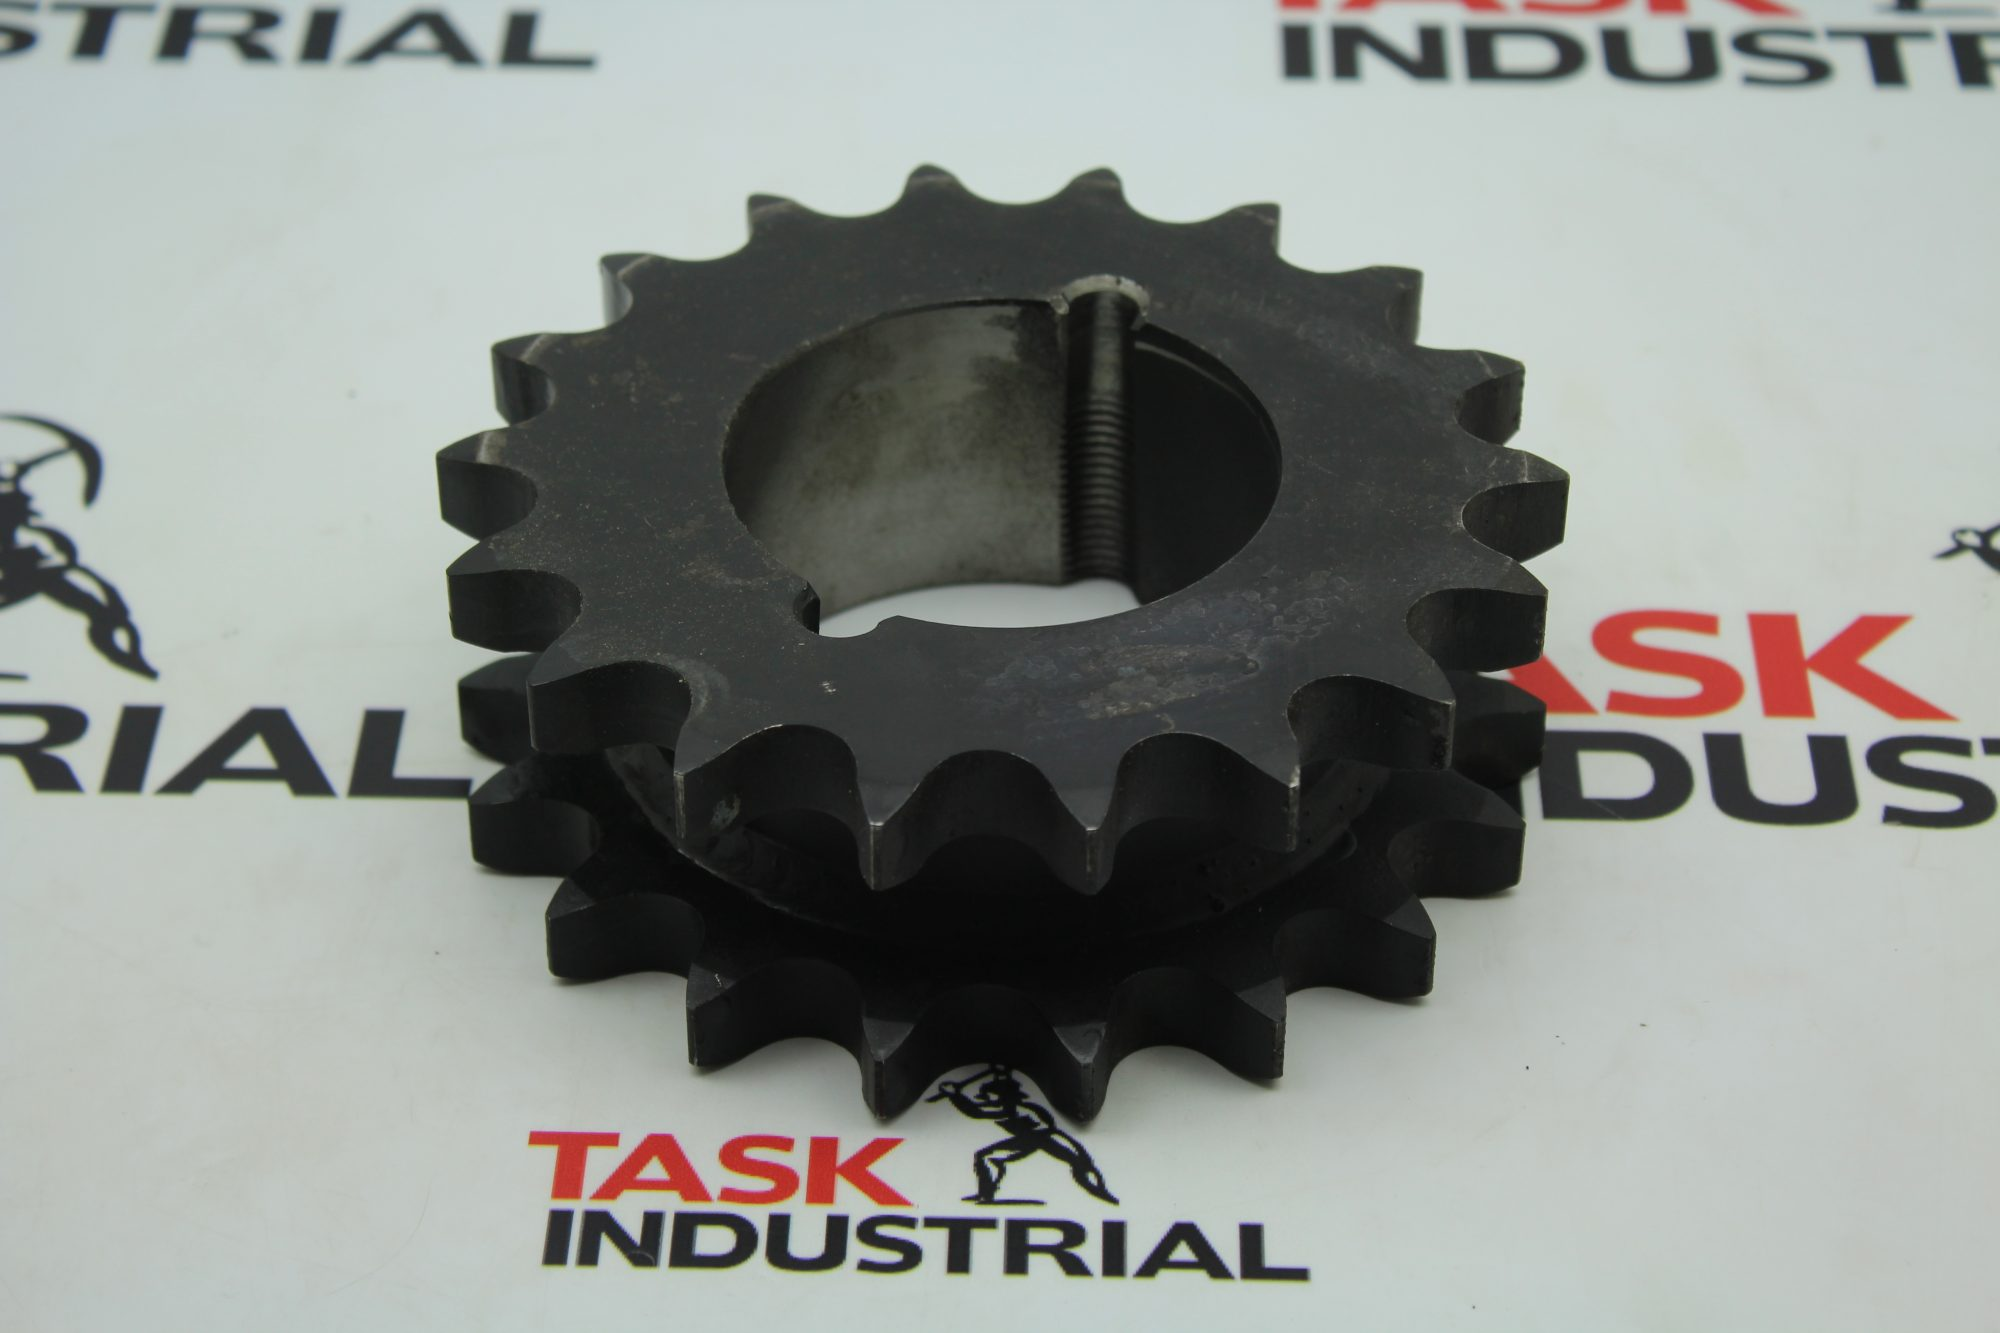 Martin Double Strand 80L18H 2517 Sprocket 3.08 Bore Size